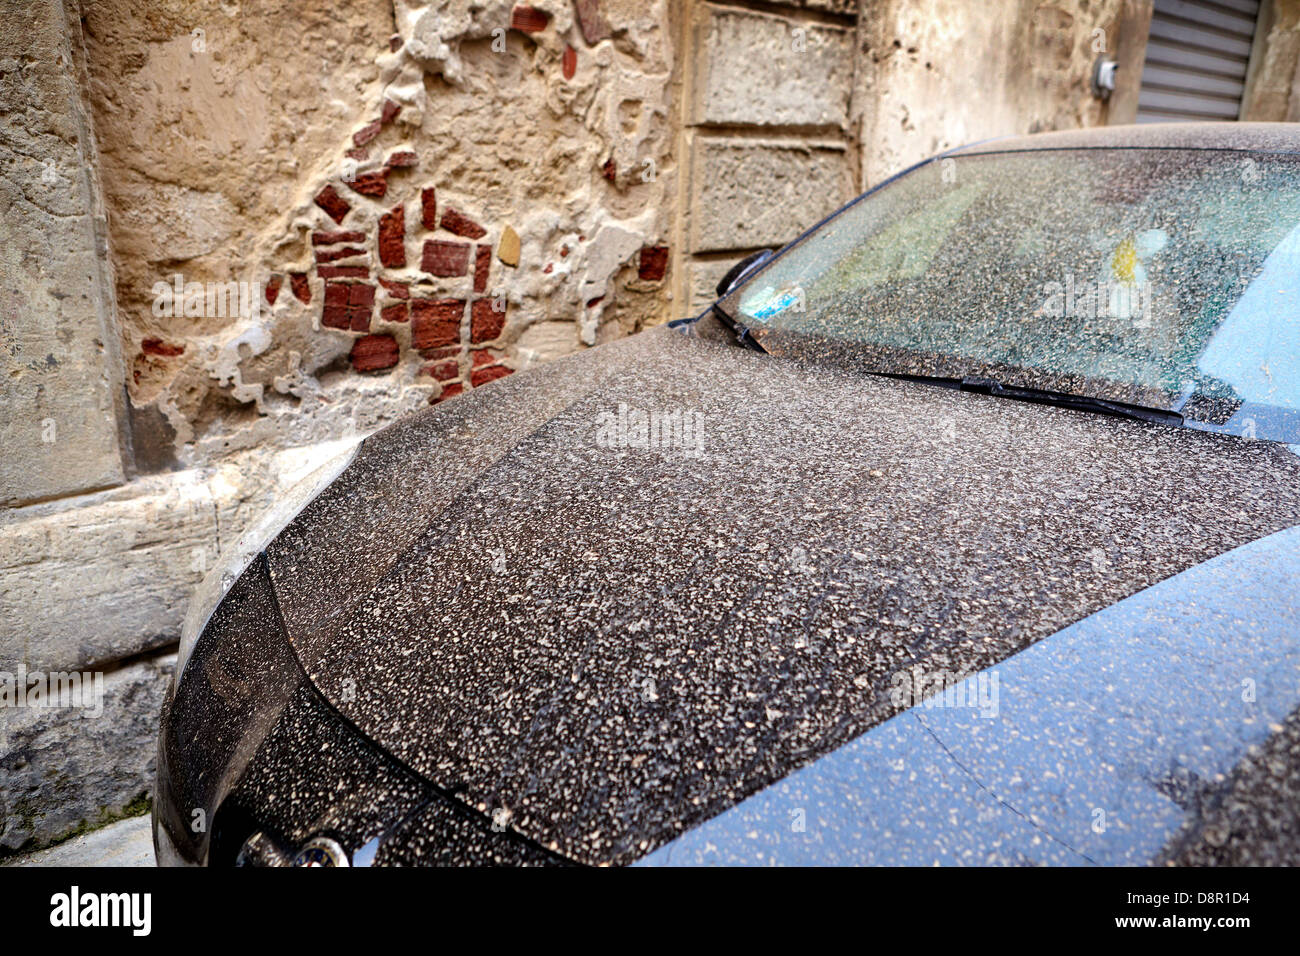 Volcanic ash from Etna falling in the rain get dirty cars, Syracuse, Sicily, Italy - Stock Image